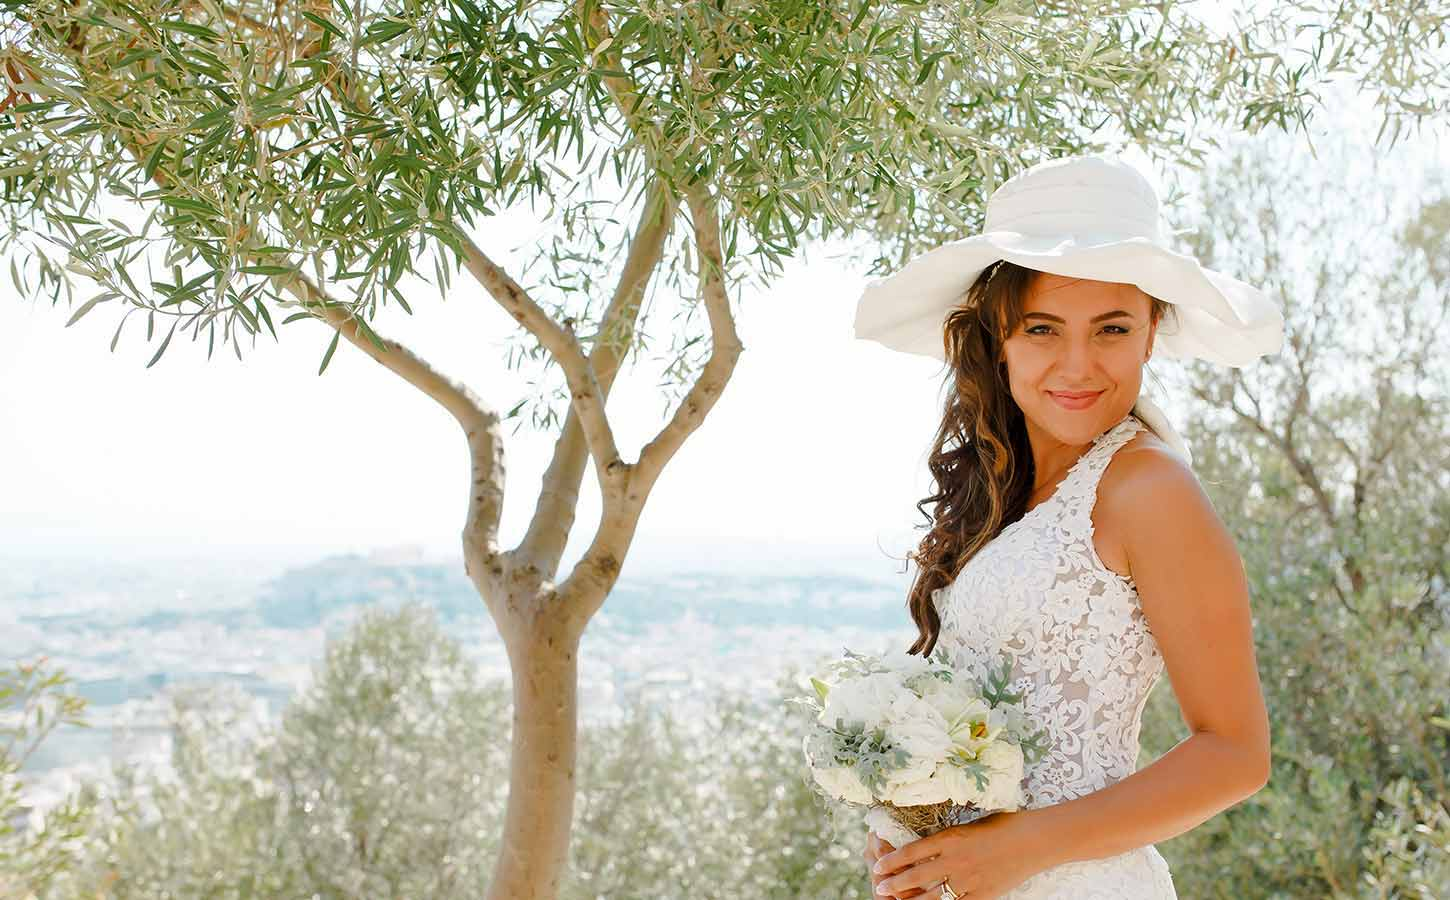 A turkish bride posing in Acropolis for the after wedding photoshooting | Tips for Happy Brides | Diamond Events Wedding Planners Greece